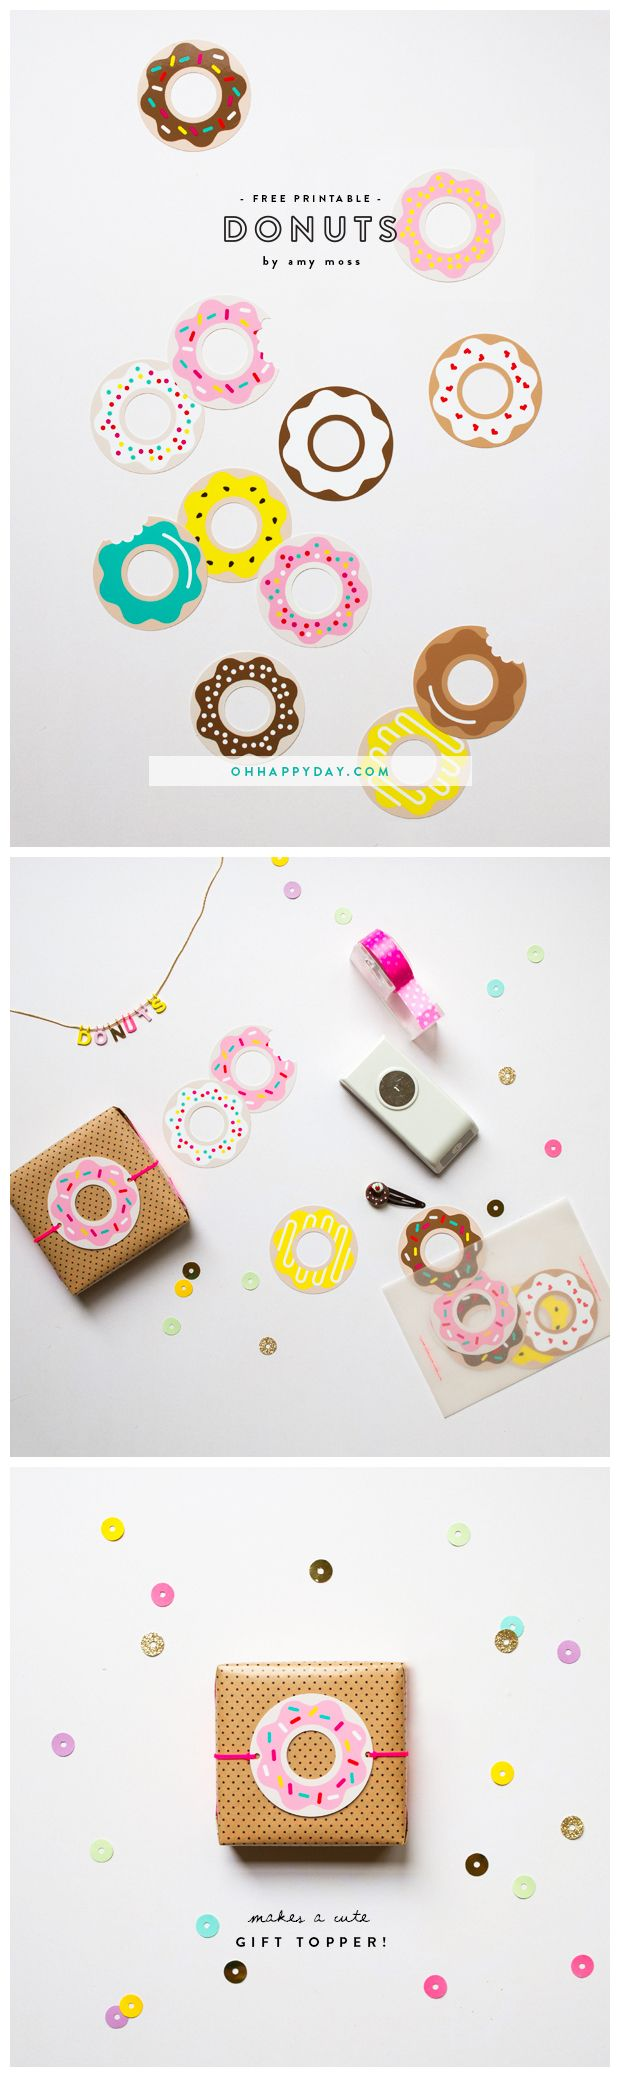 Donut printables by Amy Moss for Oh Happy Day